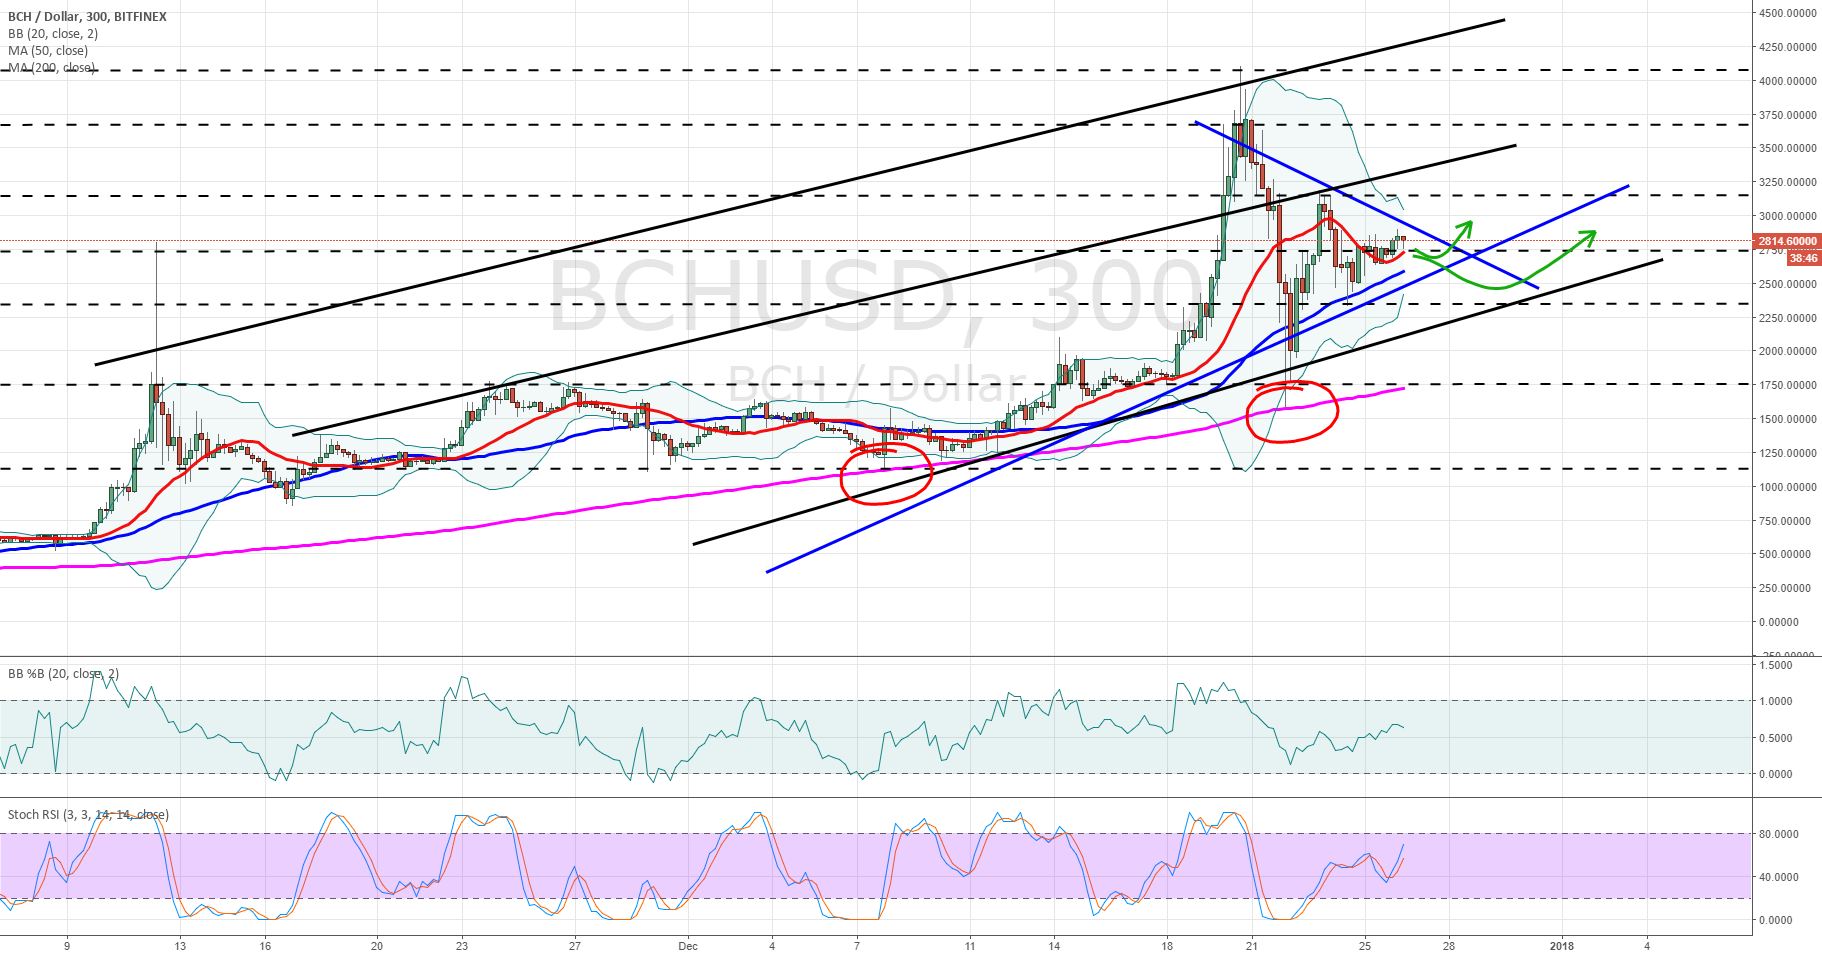 BCHUSD 5 hr chart and broader perspective